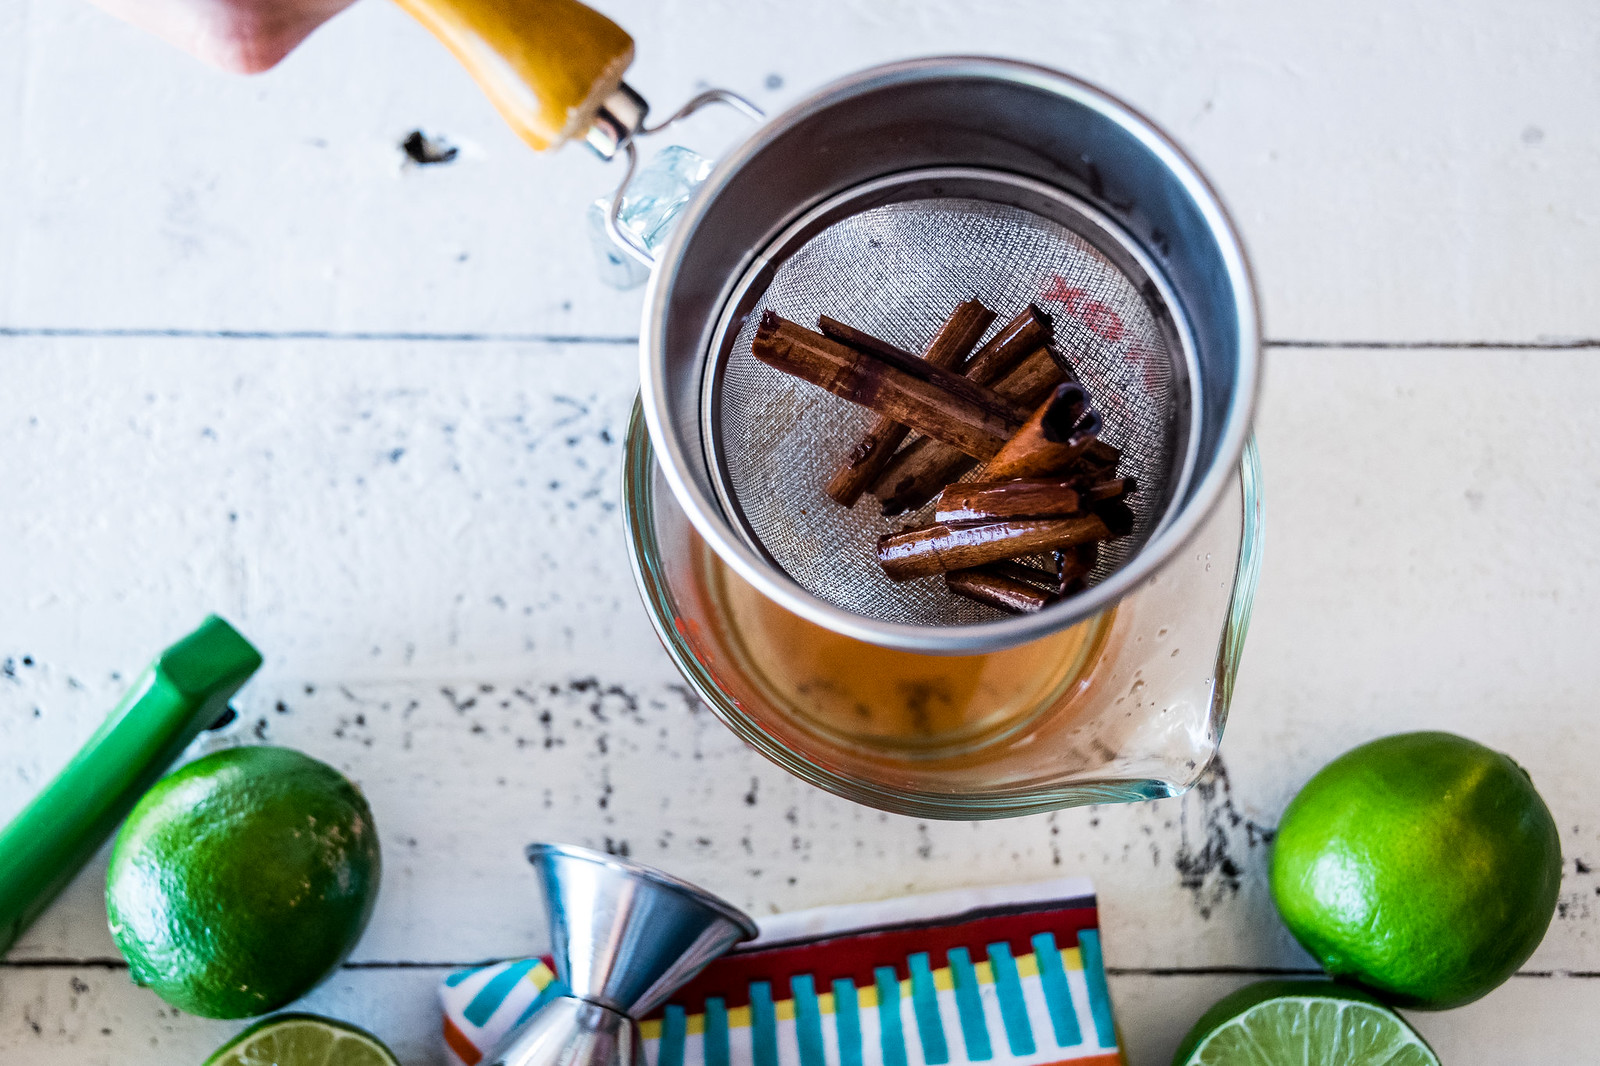 removing the sticks from the cinnamon simple syrup